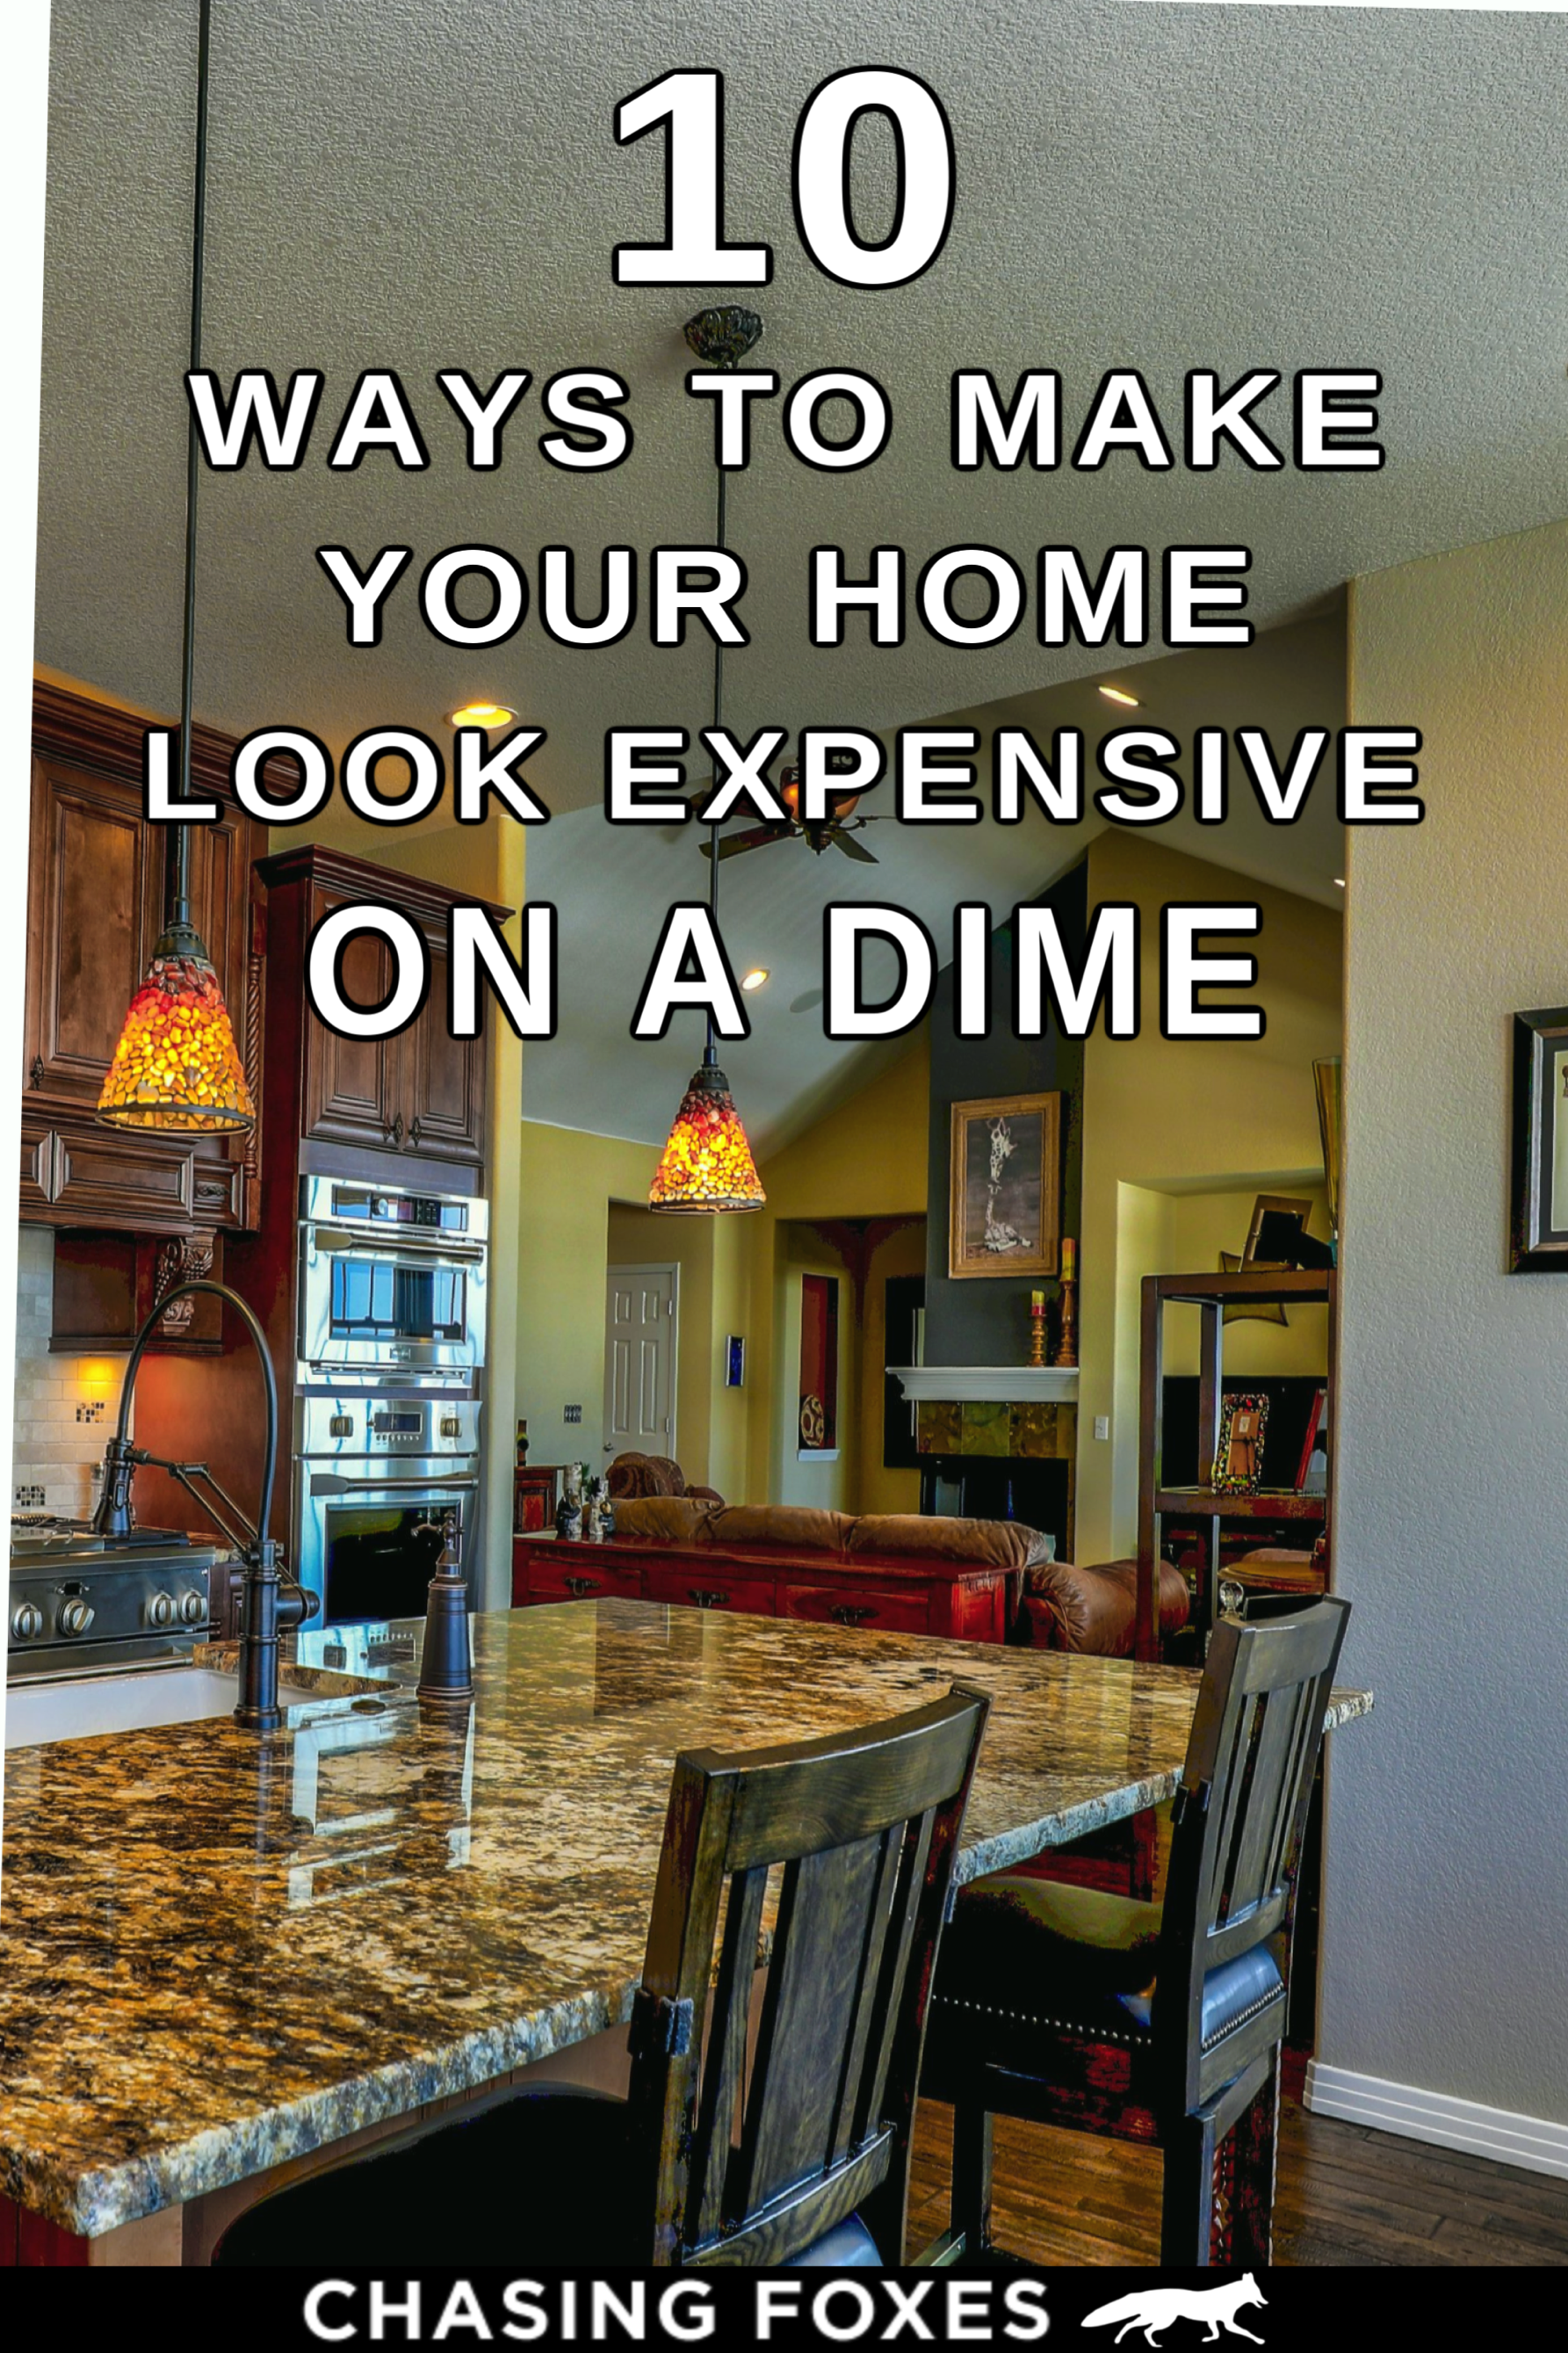 10 Awesome Cheap Home Decor Hacks And Tips In 2020 Home Decor Hacks Cheap Home Decor Home Decor